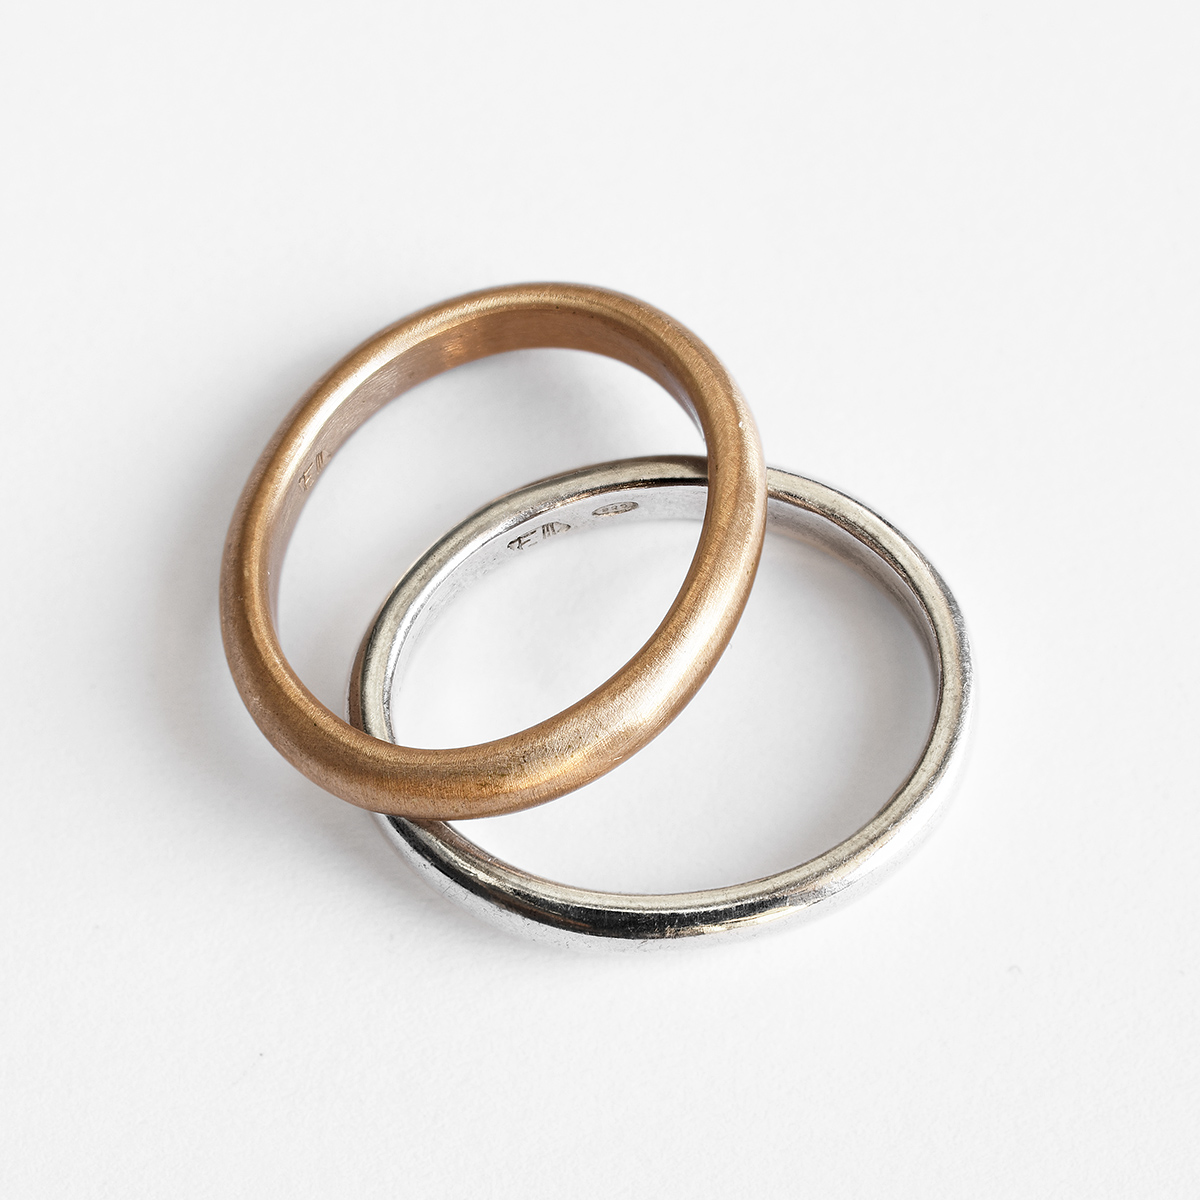 27 - Oval -ring - bronze silver, gold